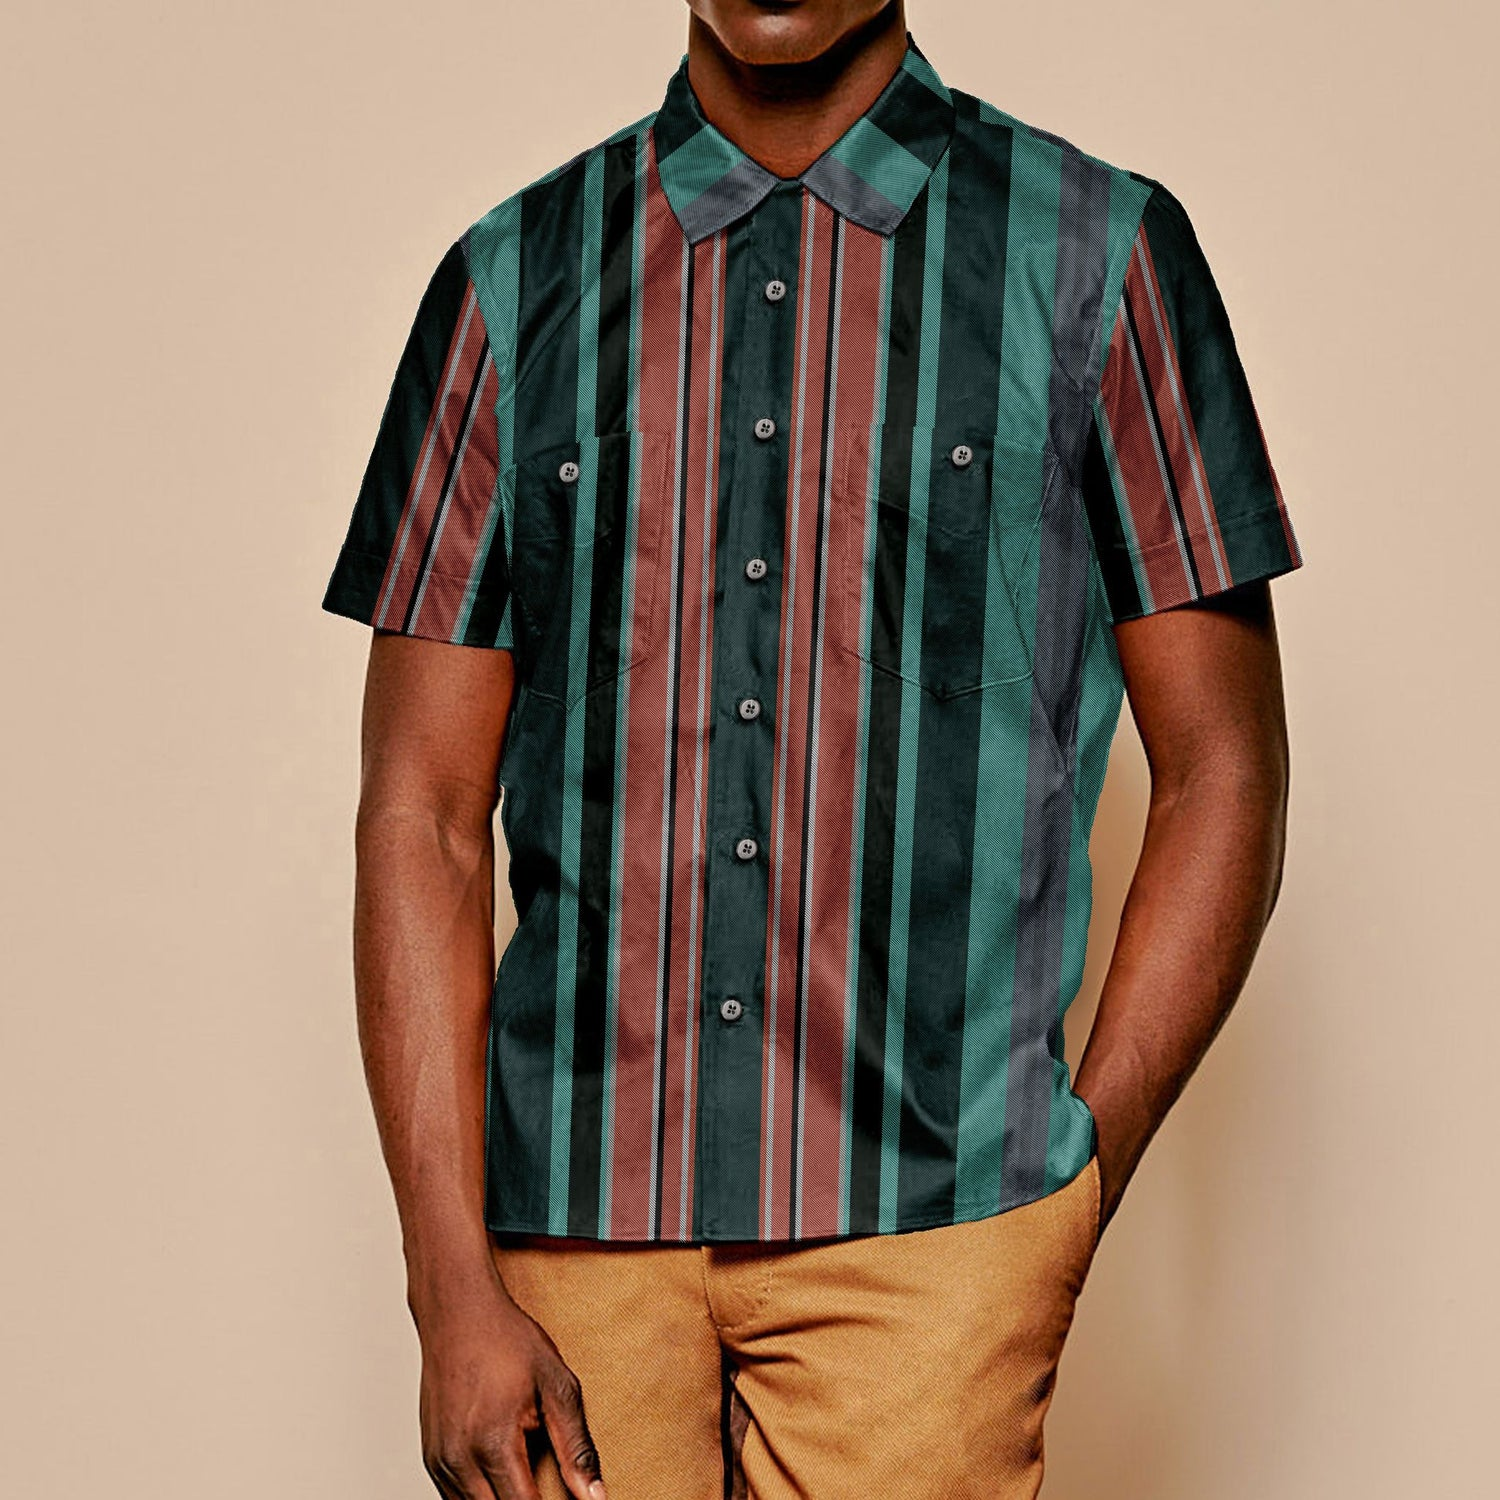 The Dazzle Ships Stripe Short Sleeve Shirt